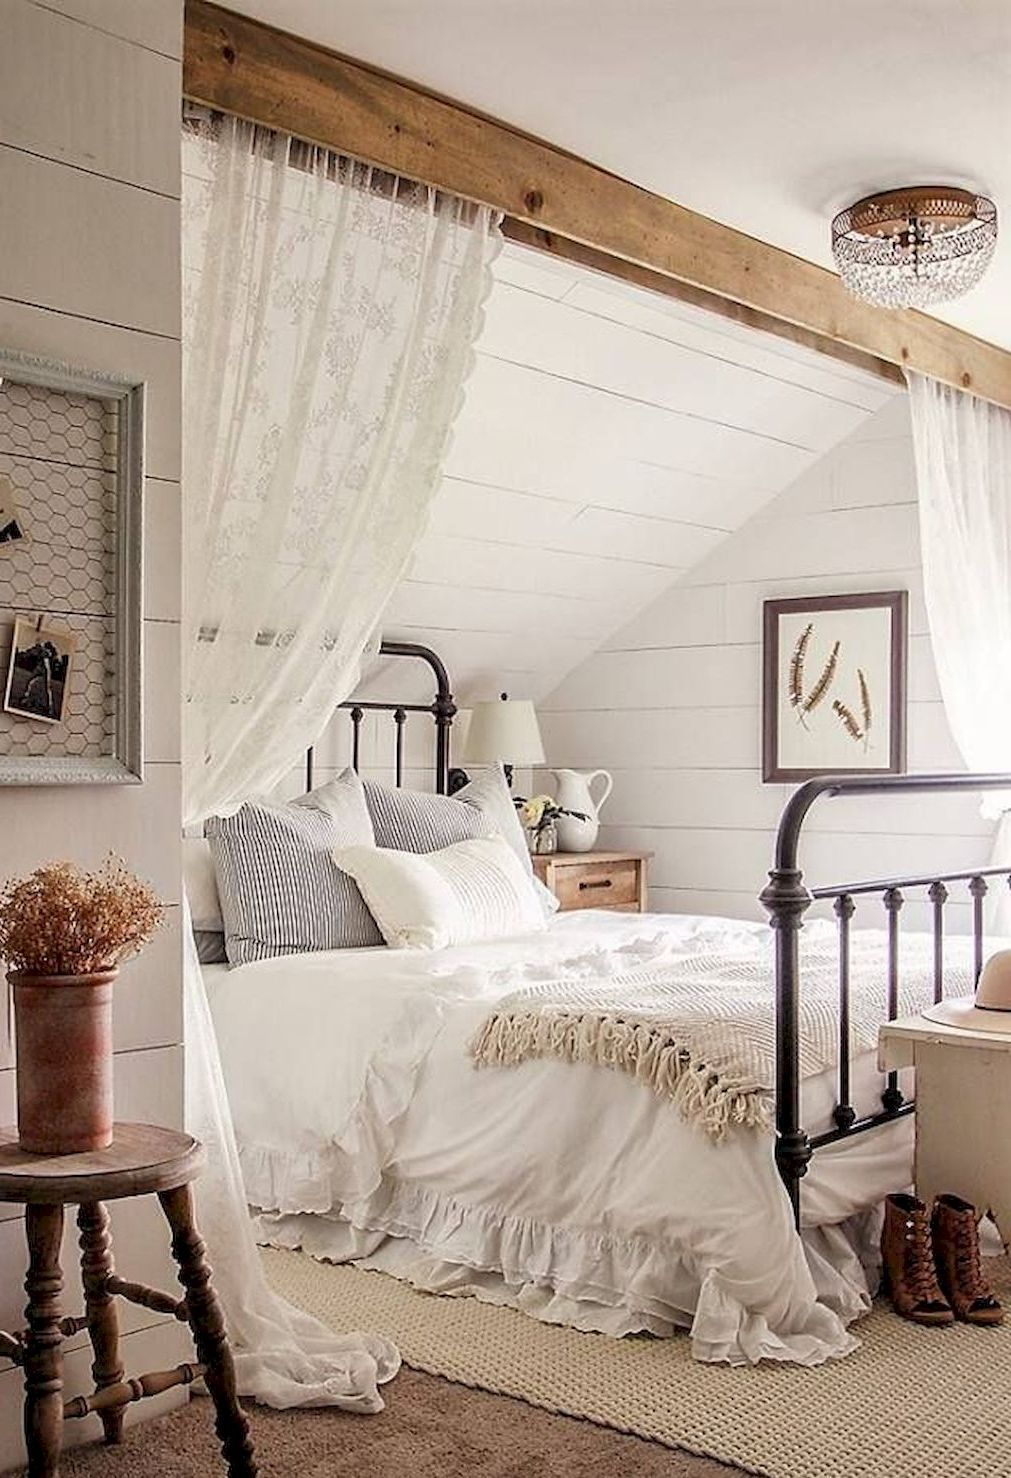 Creating The Perfect Master Bedroom Just Got A Little Easier We Gathered Our Favorite Ideas To Help You Create Ideal Retreat Youll Love Waking Up In